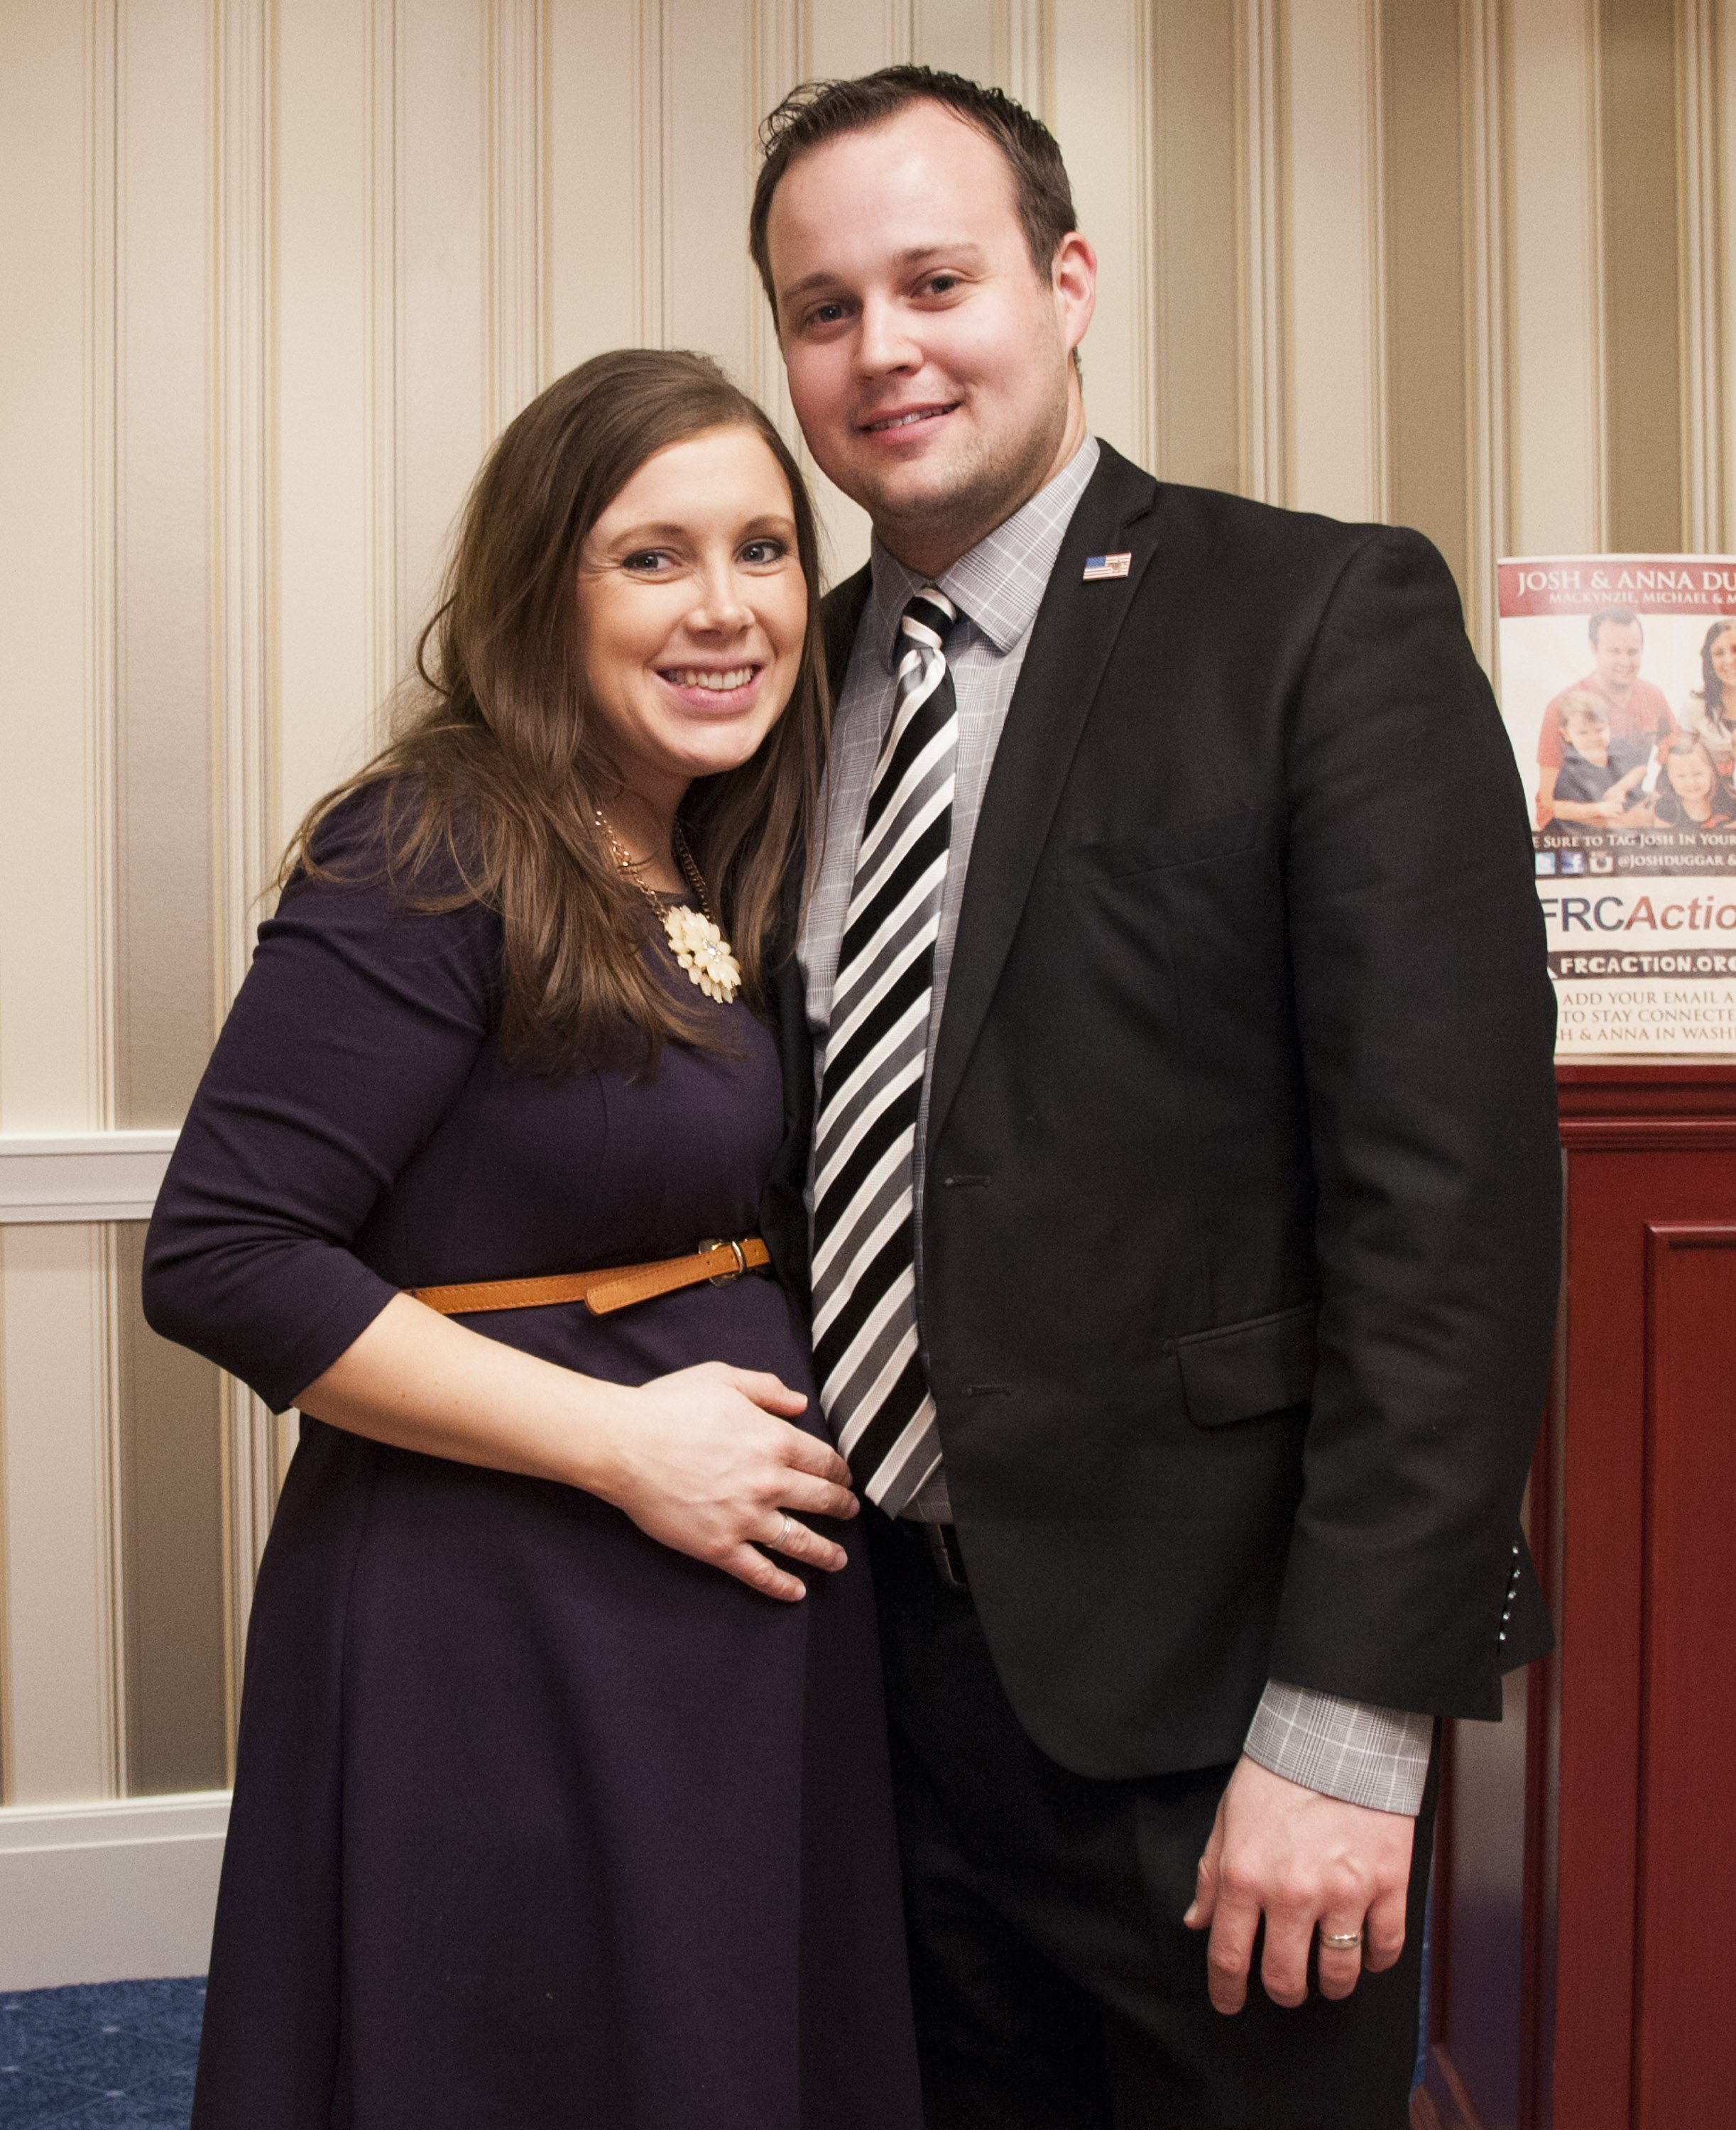 Anna Duggar and Josh Duggar pose during the 42nd annual Conservative Political Action Conference (CPAC) at the Gaylord National Resort Hotel and Convention Center on February 28, 2015 in National Harbor, Maryland | Photo: Getty Images